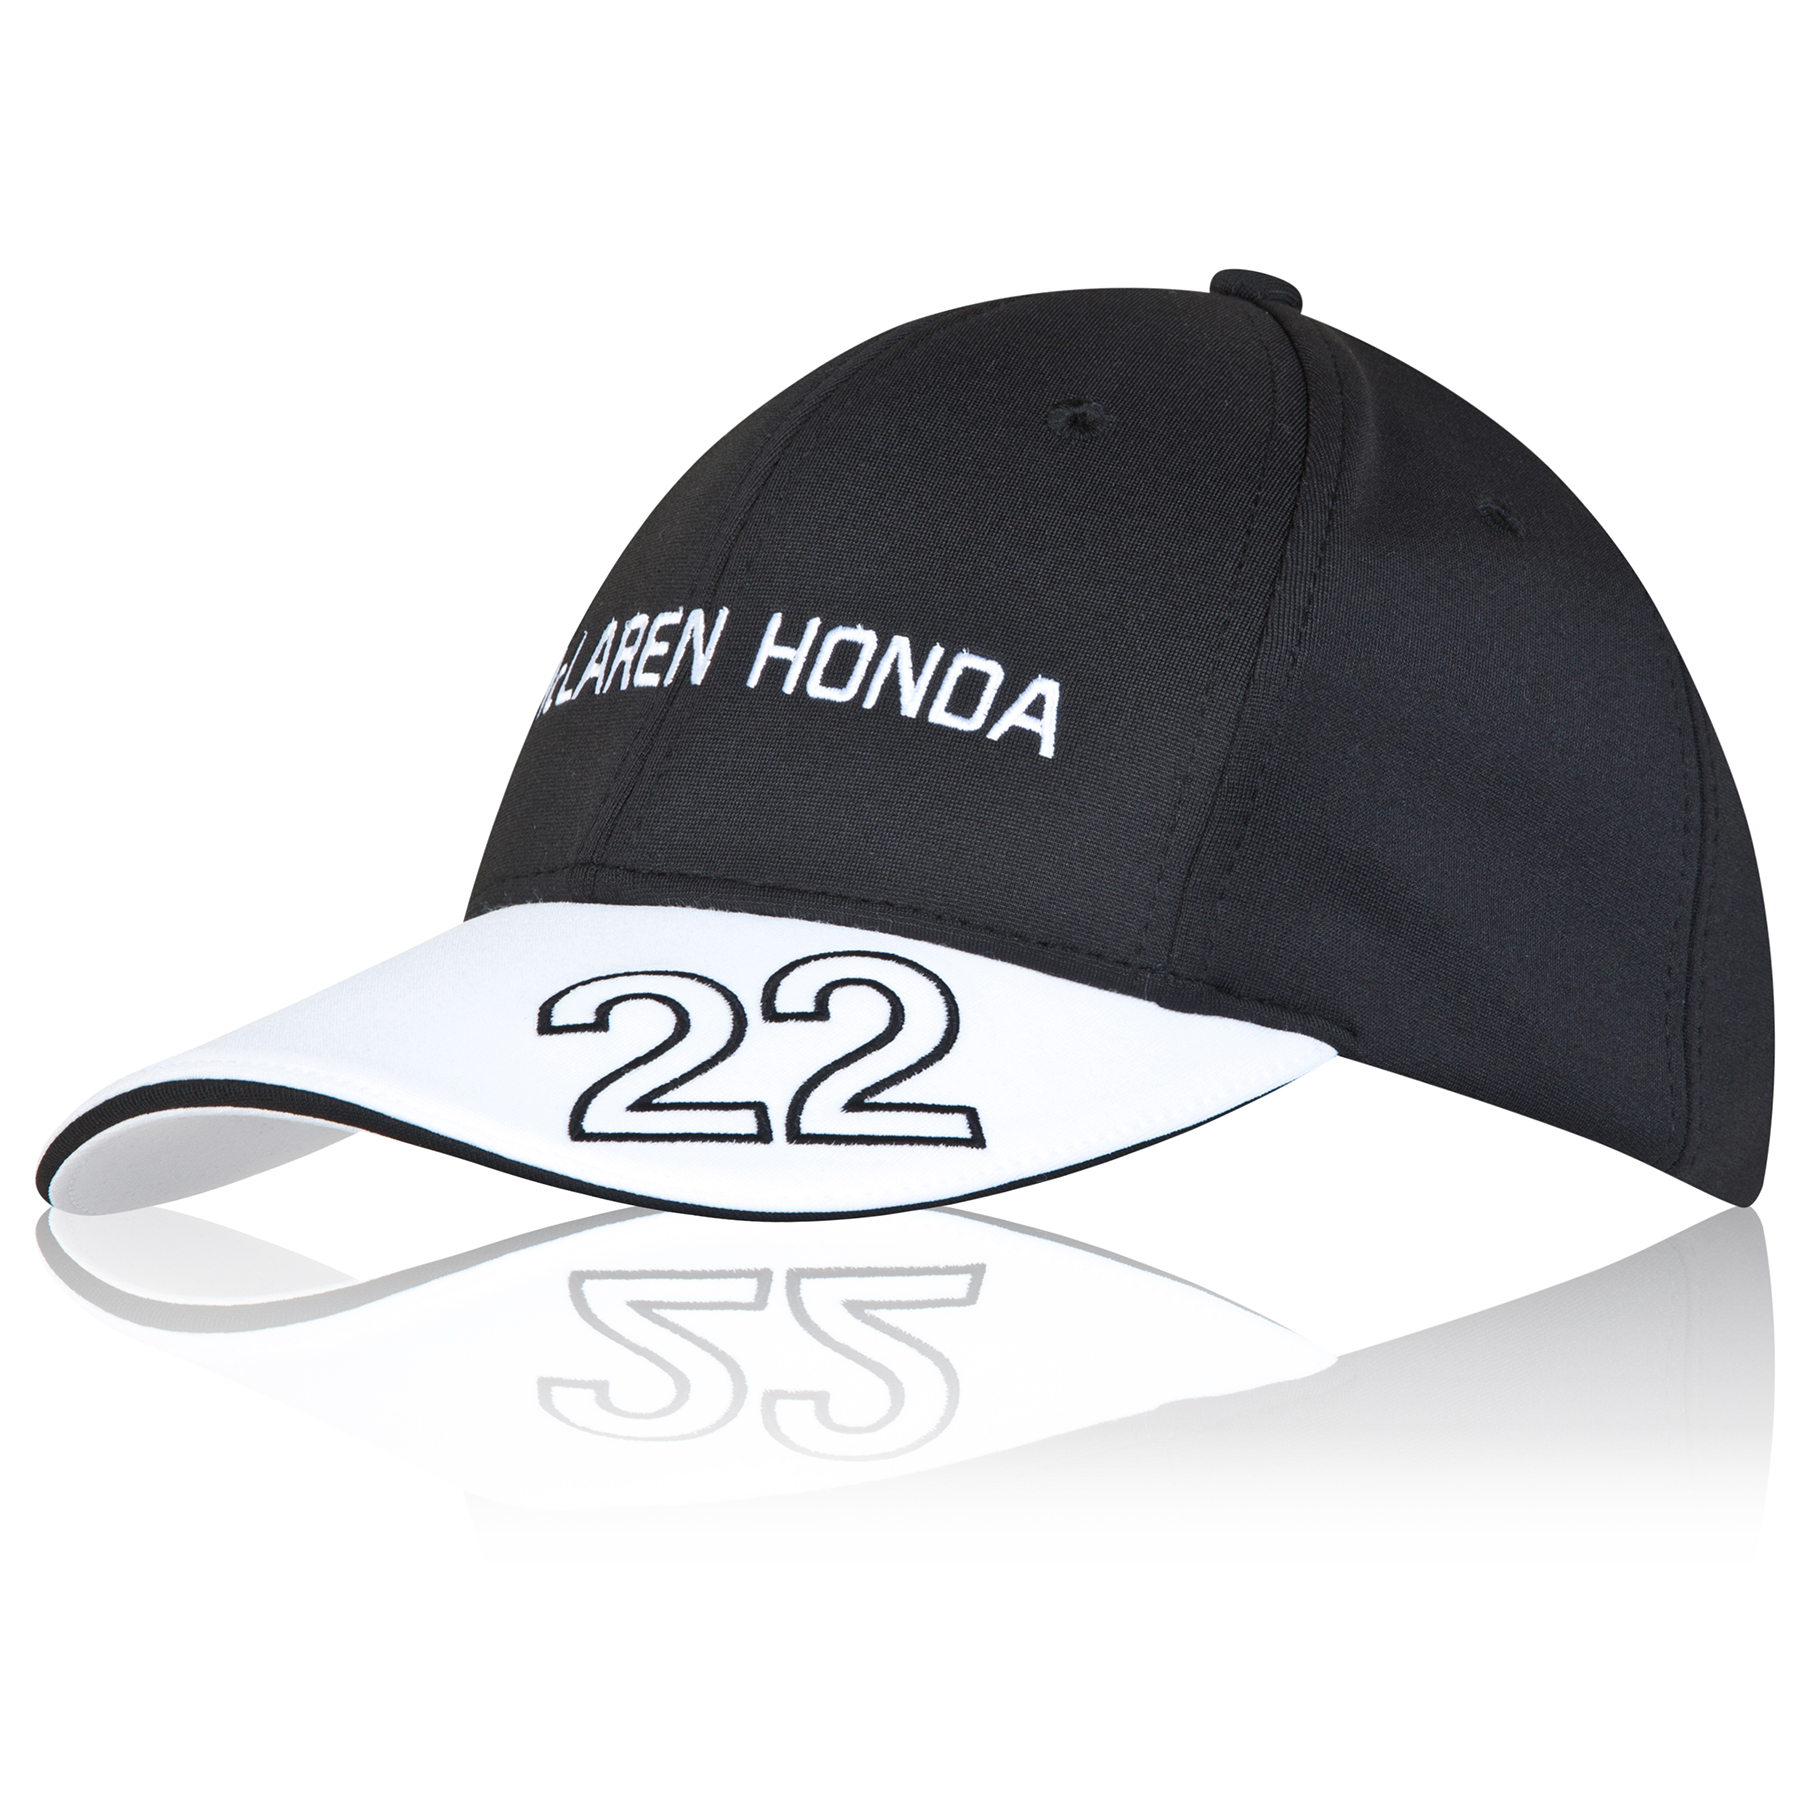 McLaren Honda Official Jenson Button Cap Adult Black